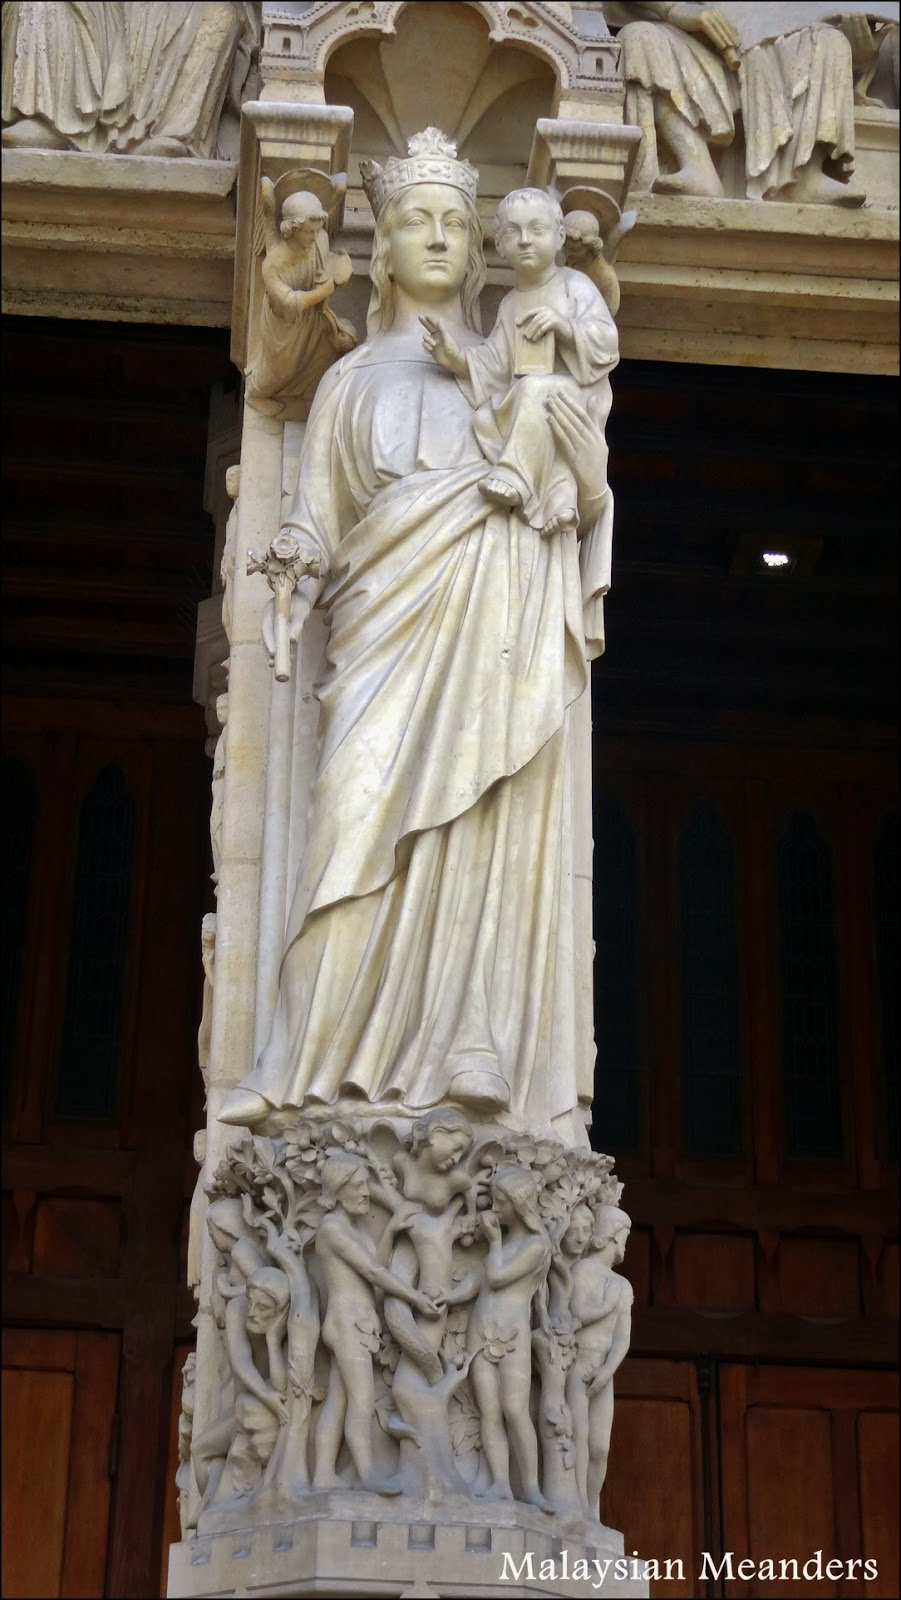 Malaysian Meanders Looking For Mary At Notre Dame